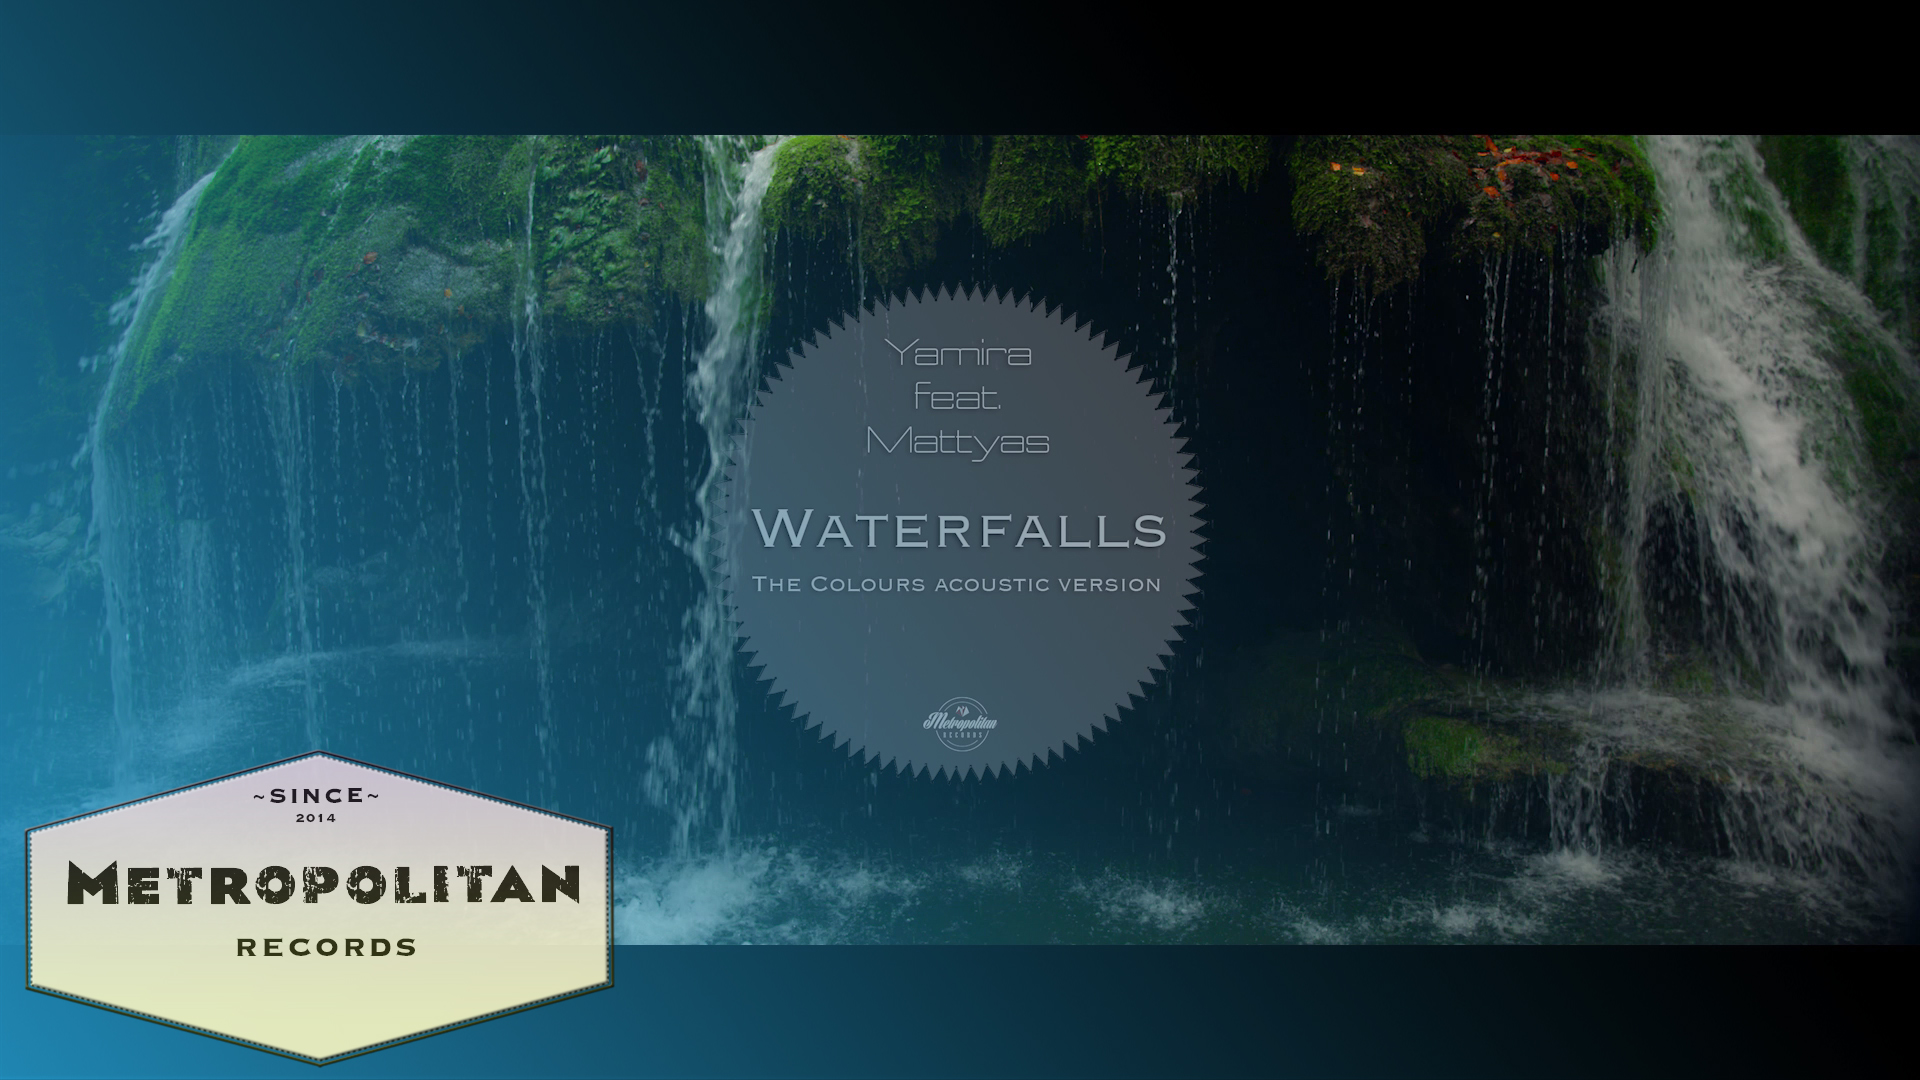 Yamira feat. Mattyas - Waterfalls Acoustic Version by The Colours (1) {focus_keyword} Metropolitan Records prezinta varianta acustica a piesei Yamira feat. Mattyas - Waterfalls Yamira feat